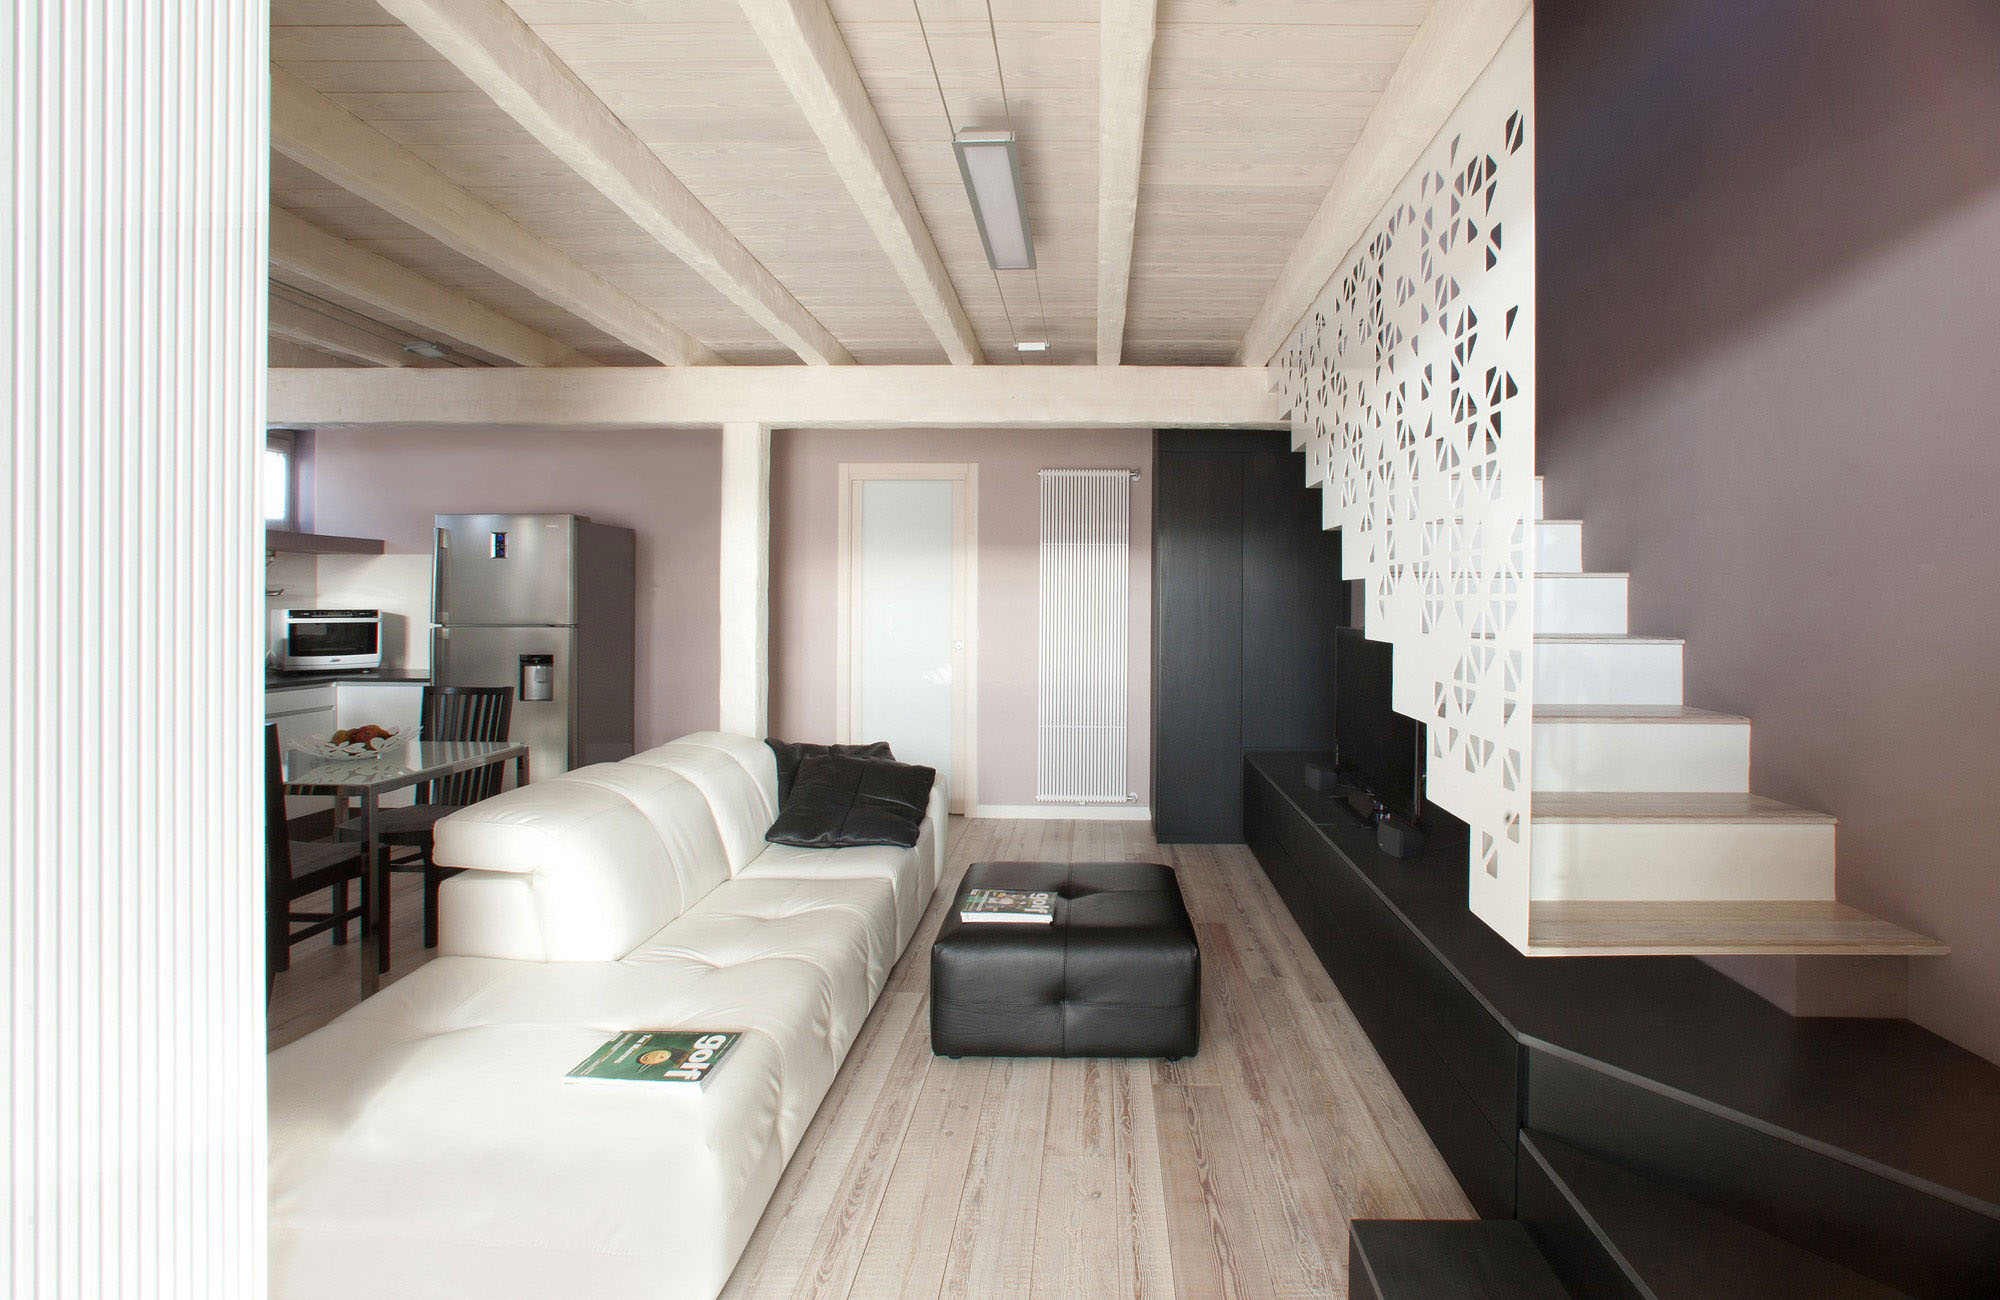 Casa ld by egovitaminacreativa for Case a due piani moderne